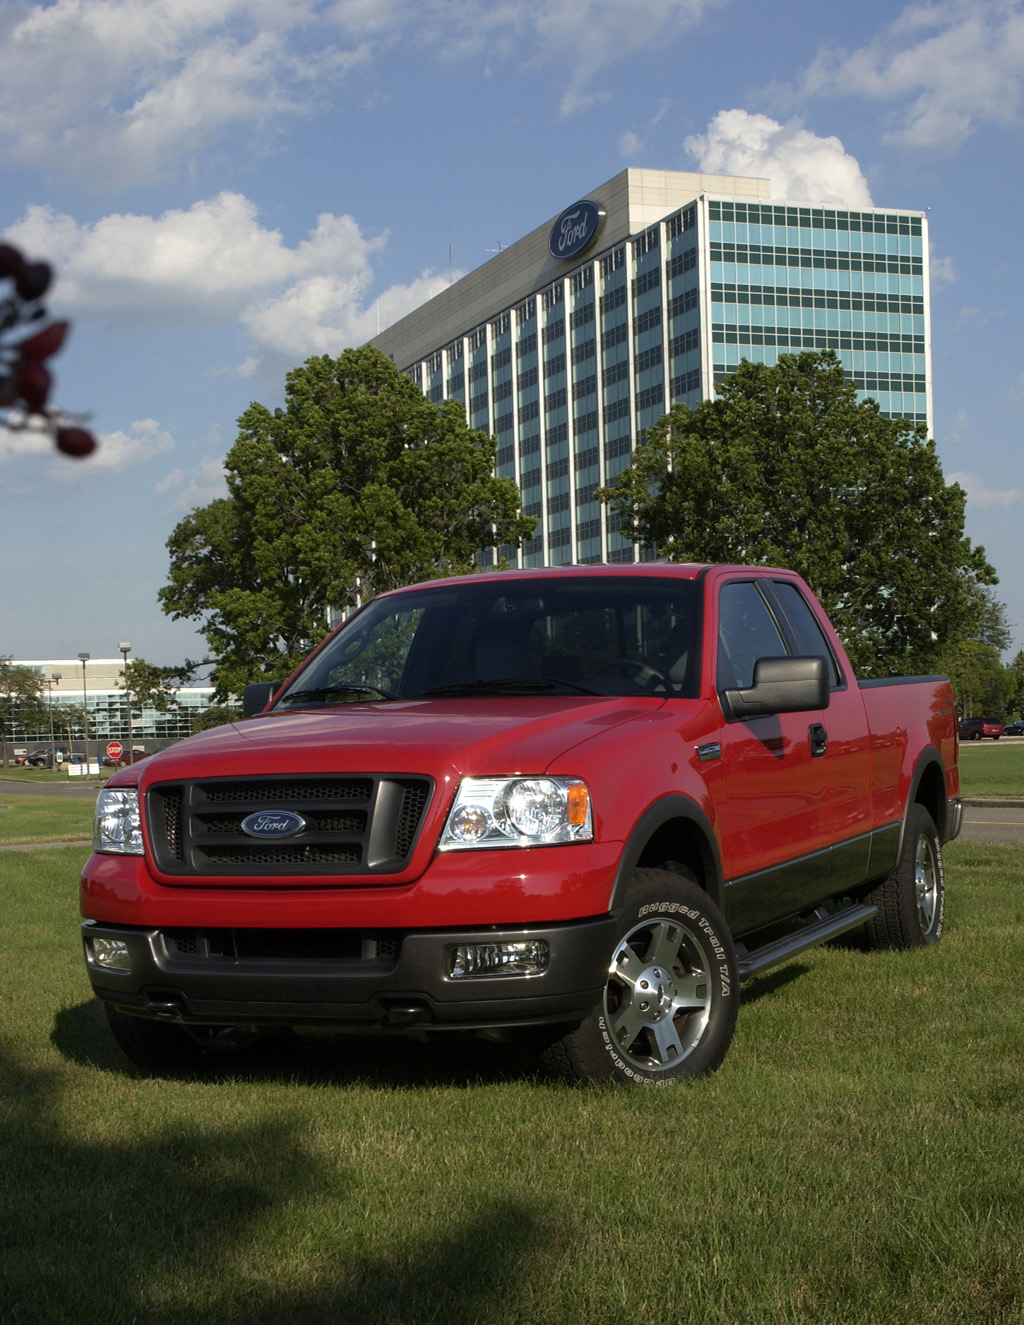 2004 Ford F150 Iron Man By Deberti Designs Wallpaper And Image Gallery F 150 Sport Thumbnail